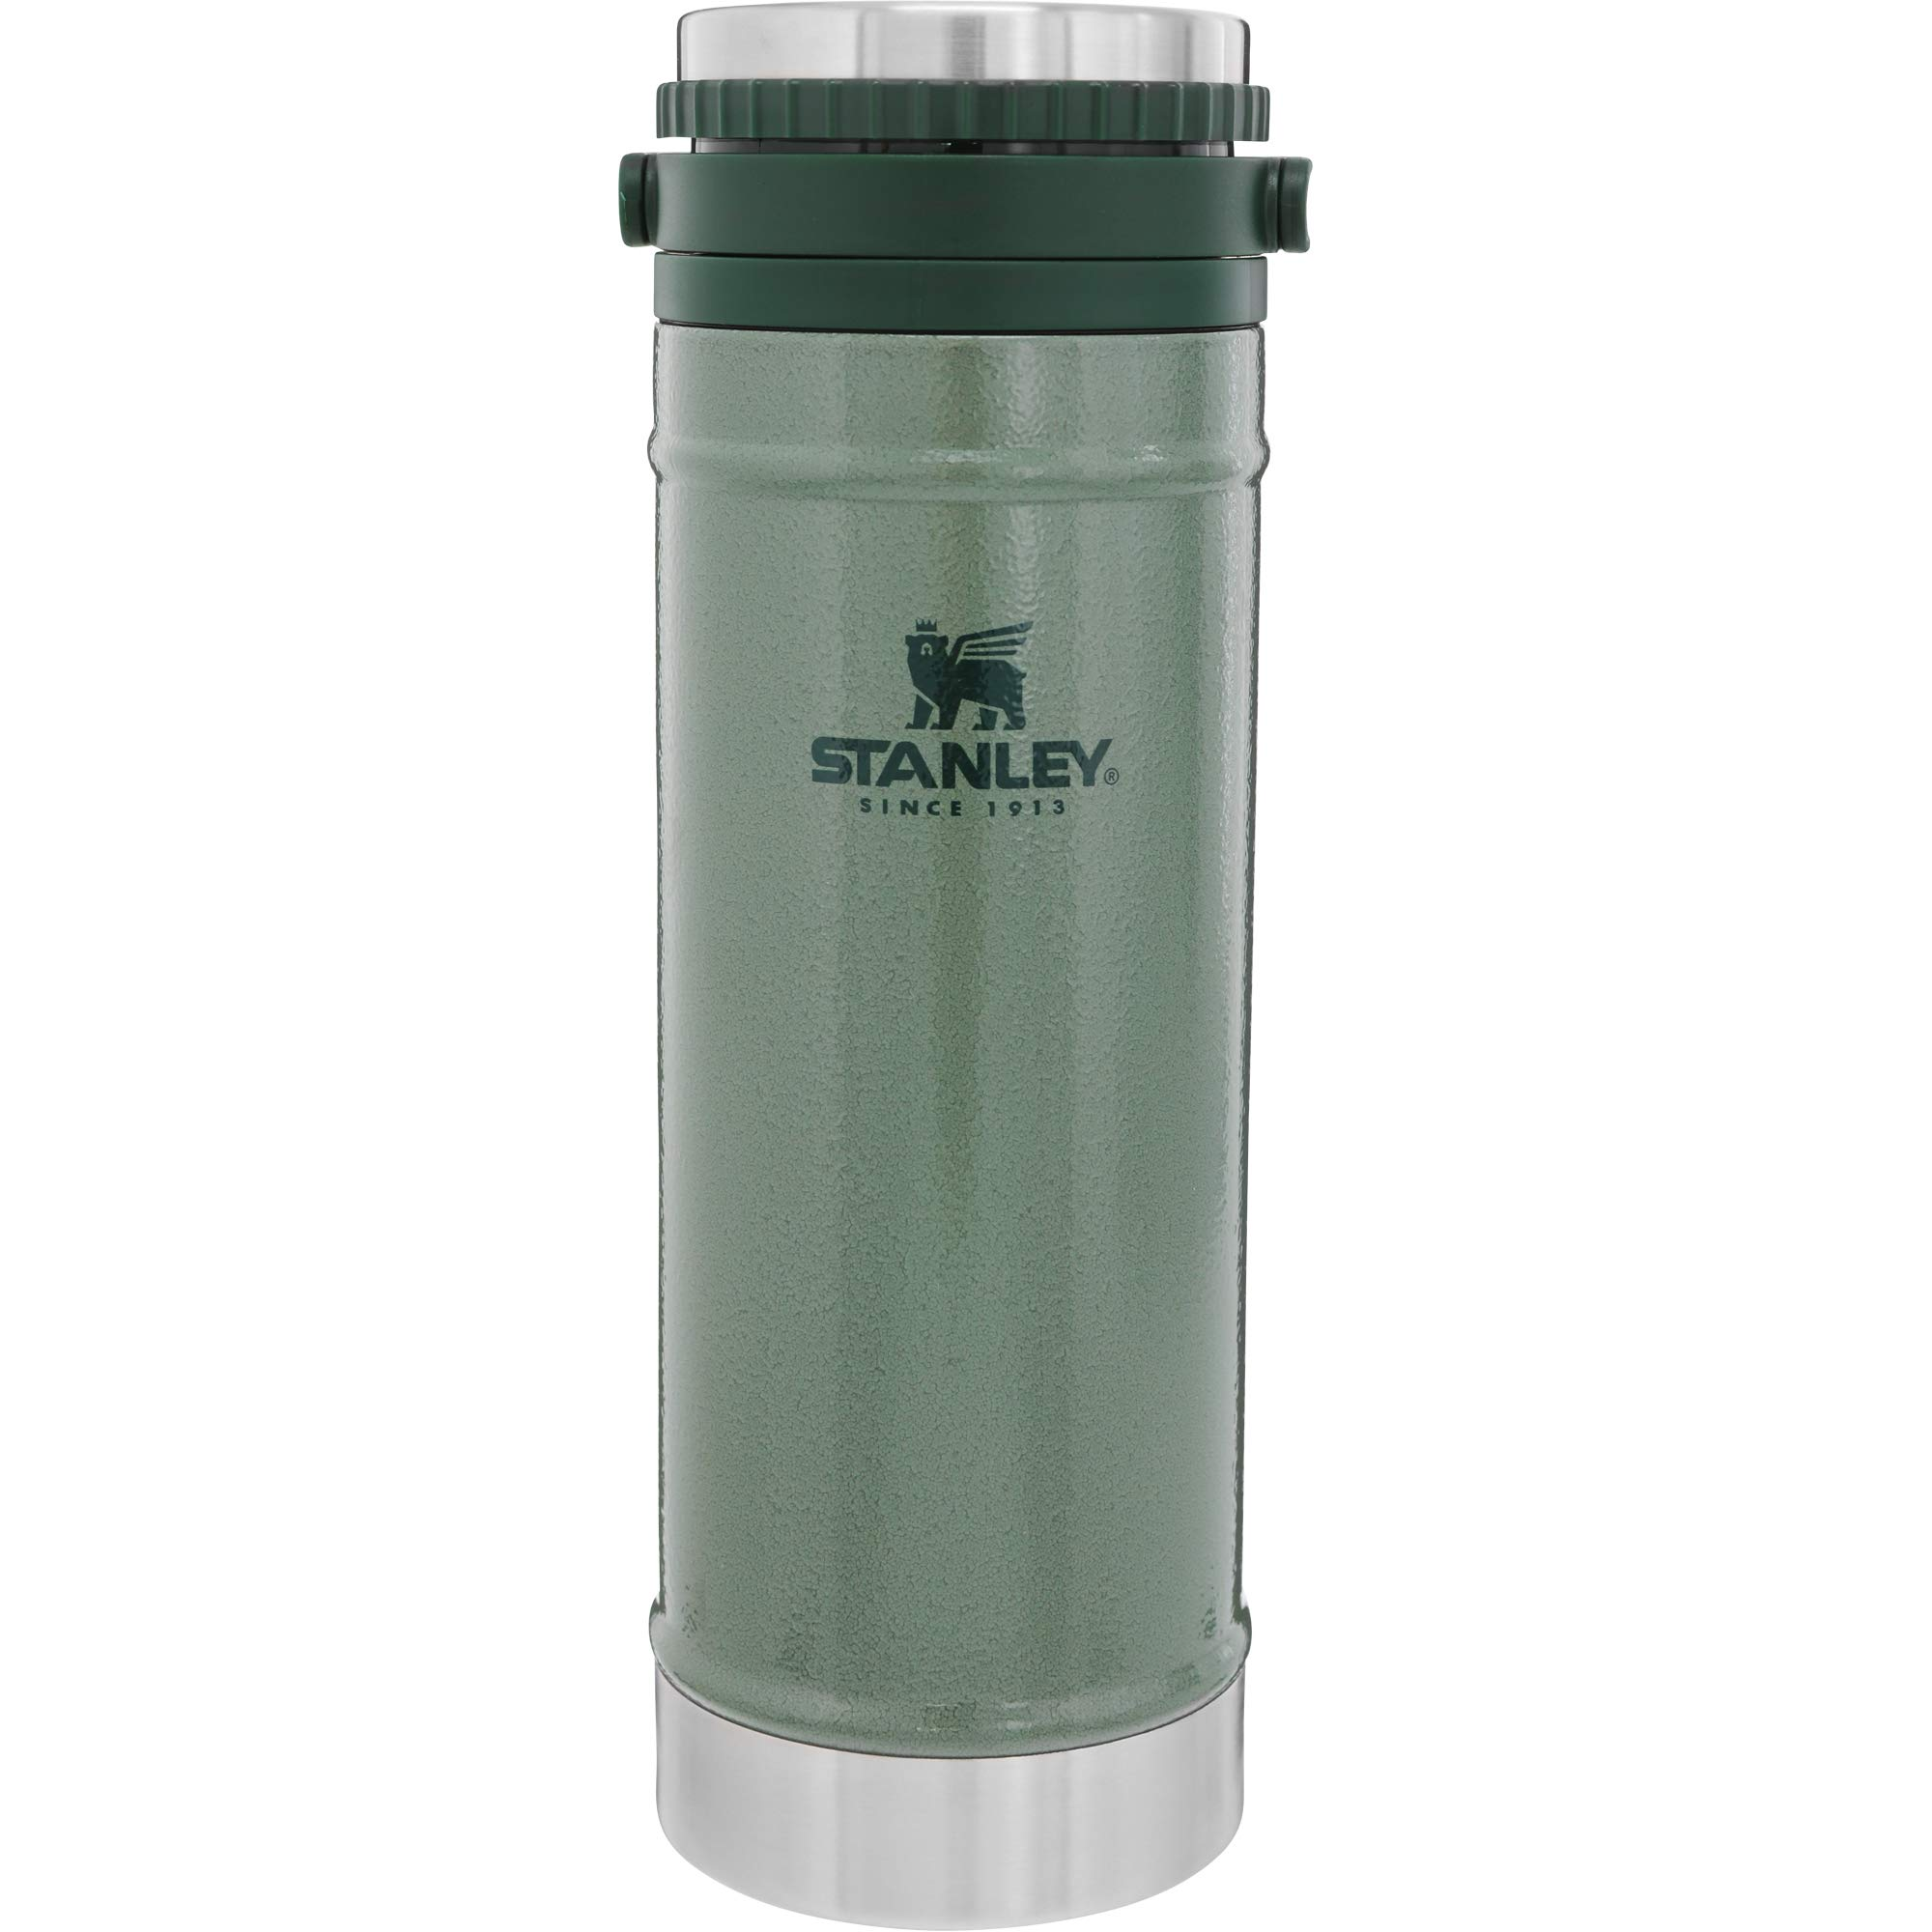 Stanley Classic Travel Mug French Press 16oz